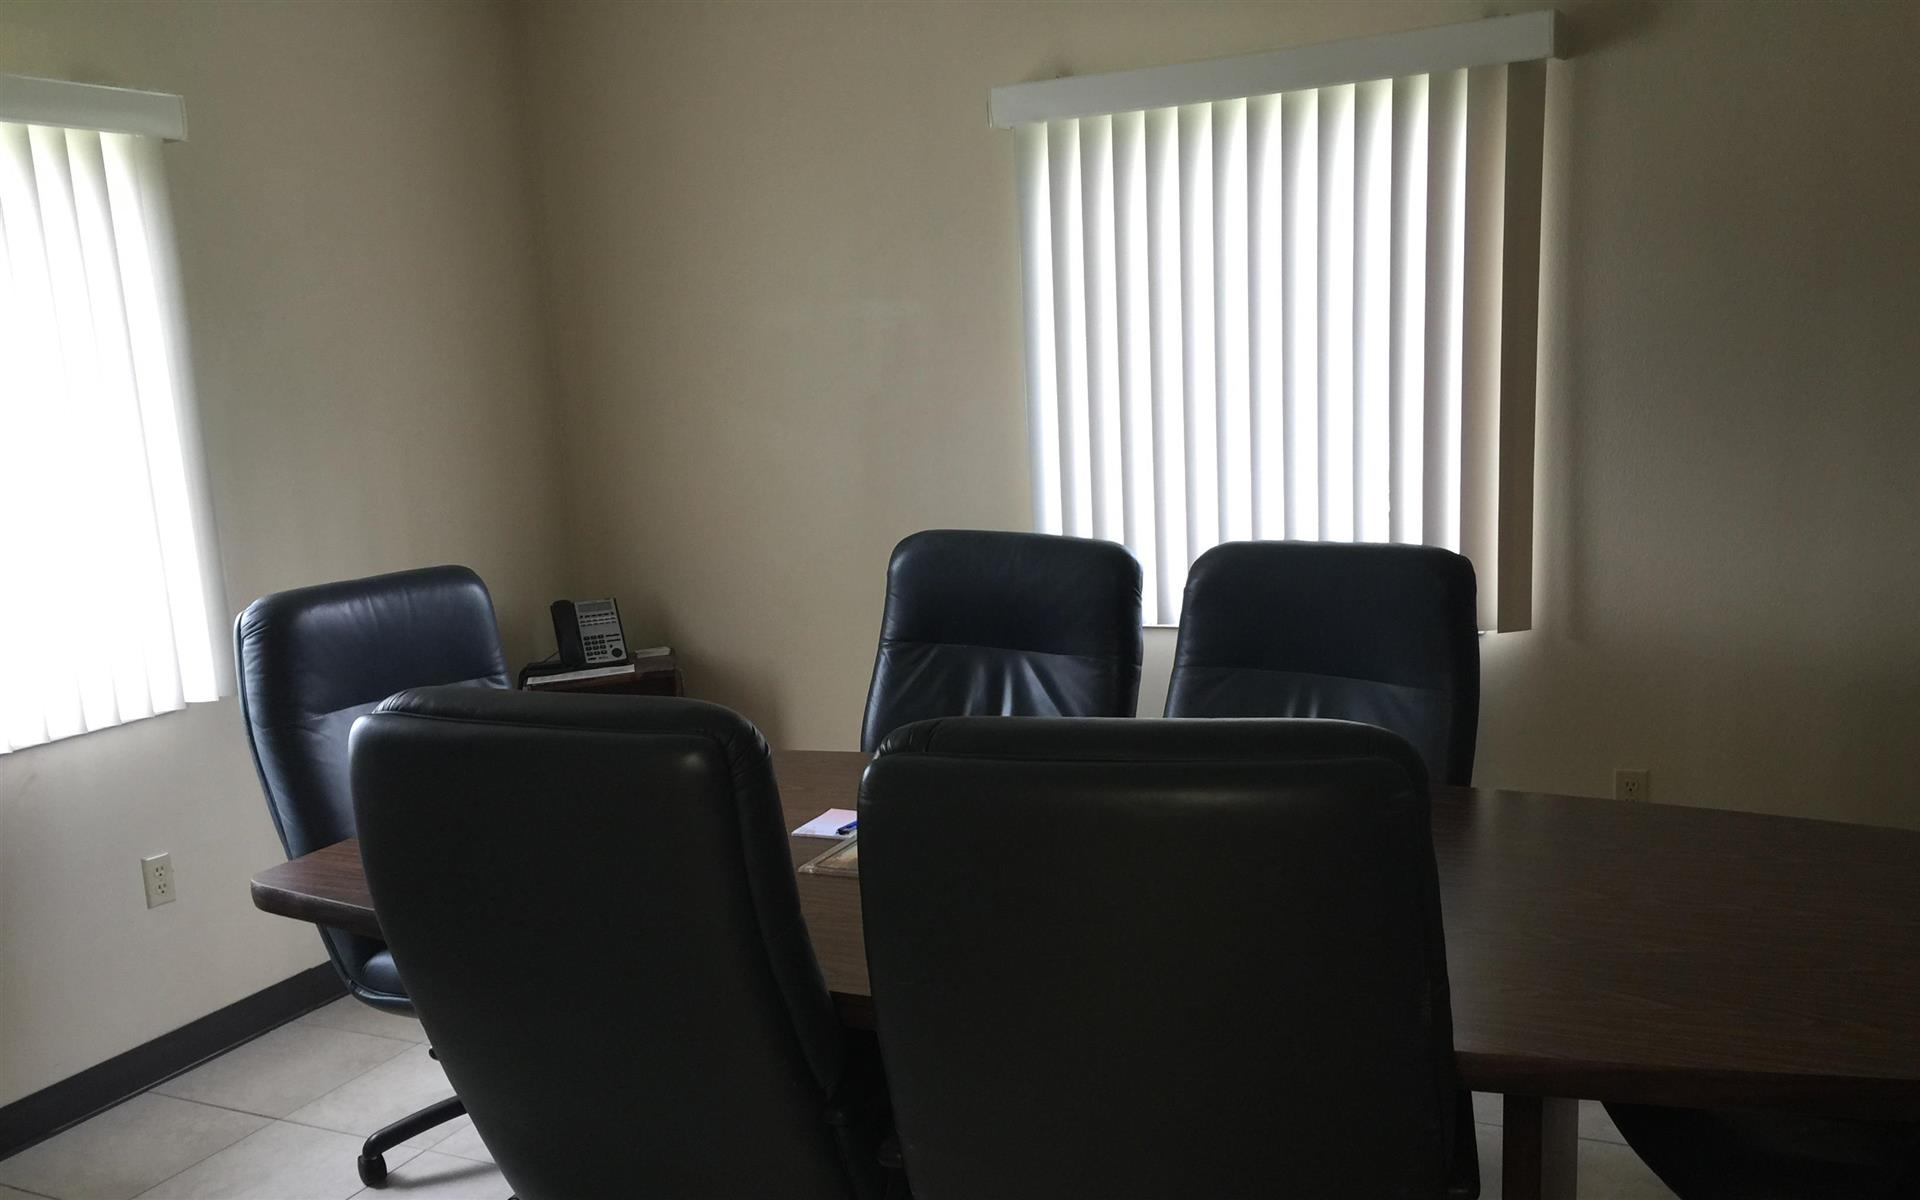 Spaulding Decon - Monthly & Hourly Space - Private Conference room